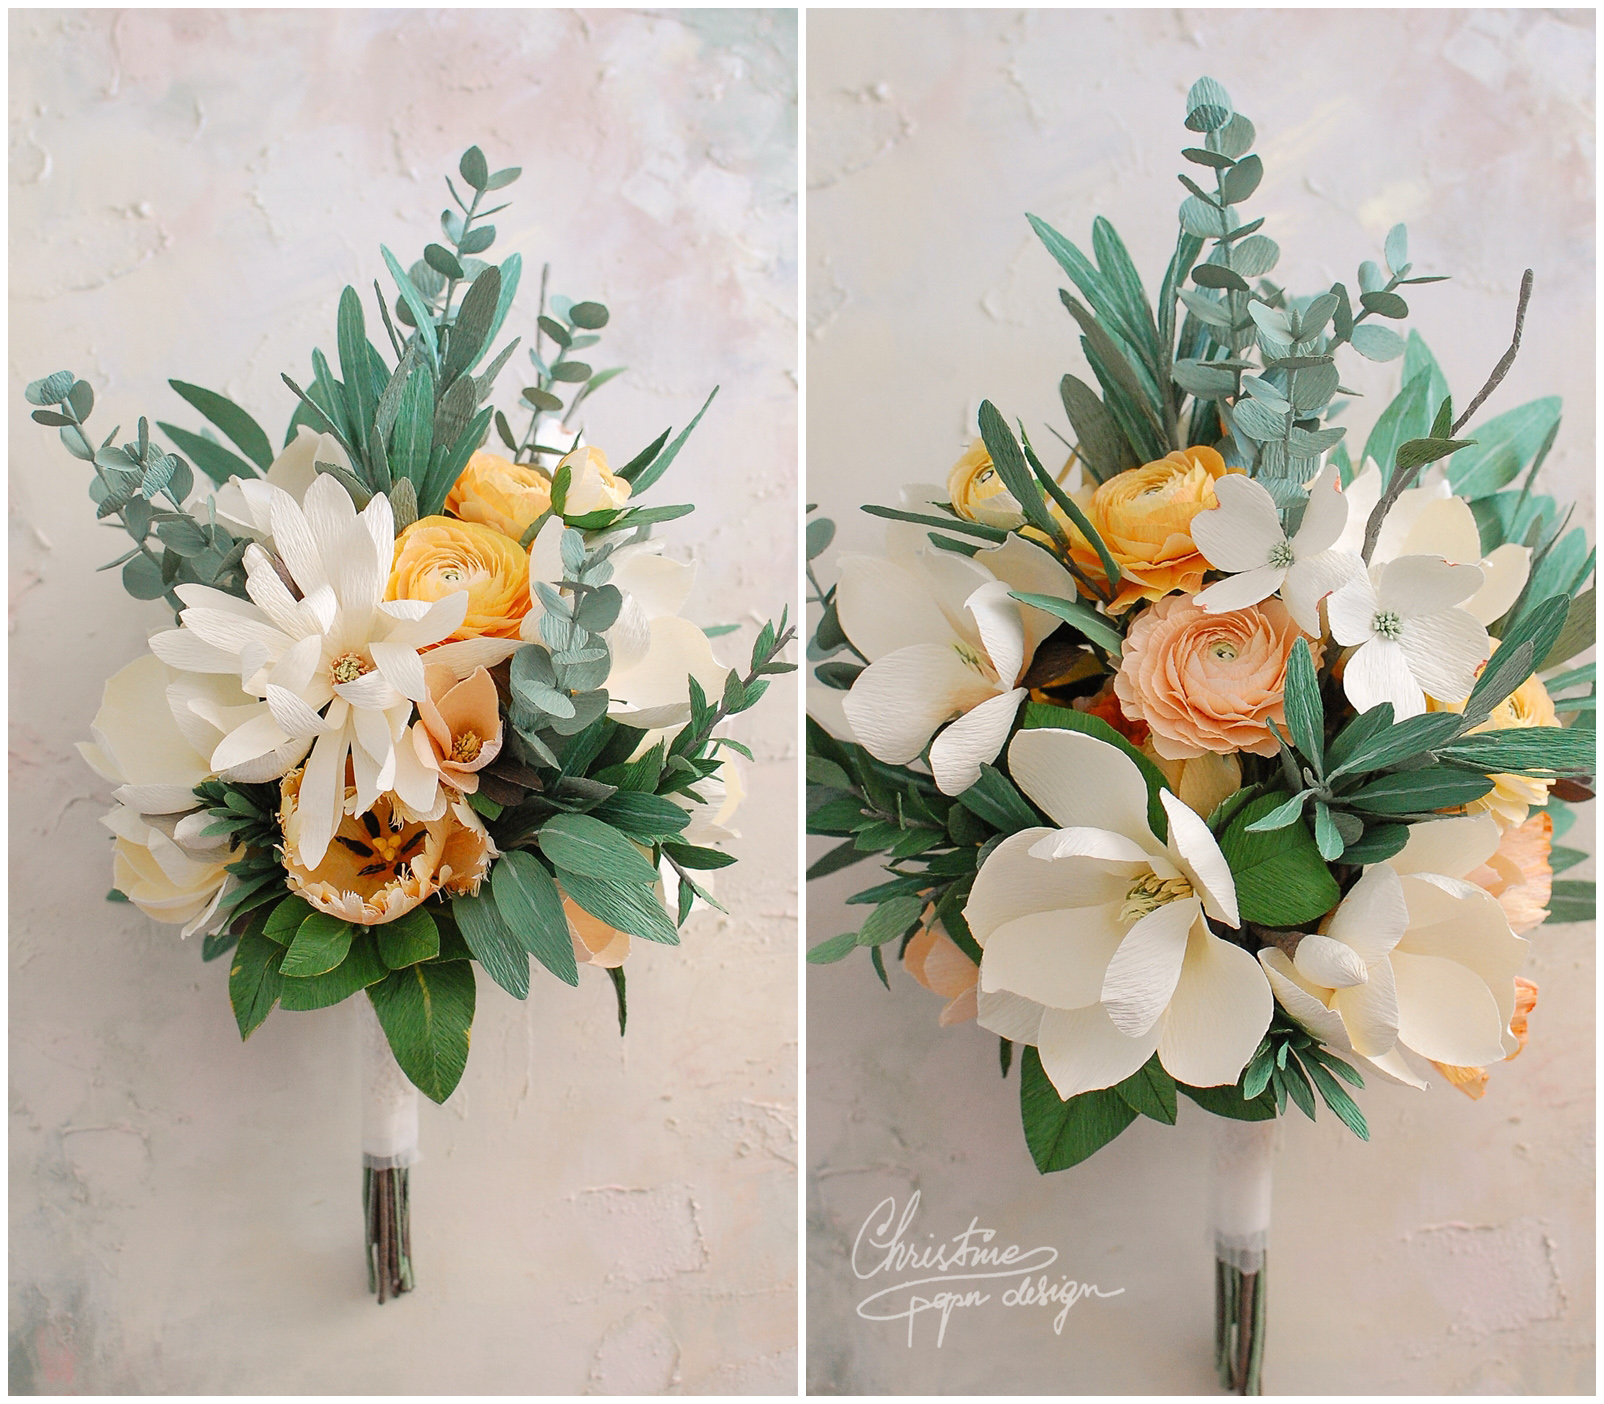 bridal bouquet - Christine paper design (1)